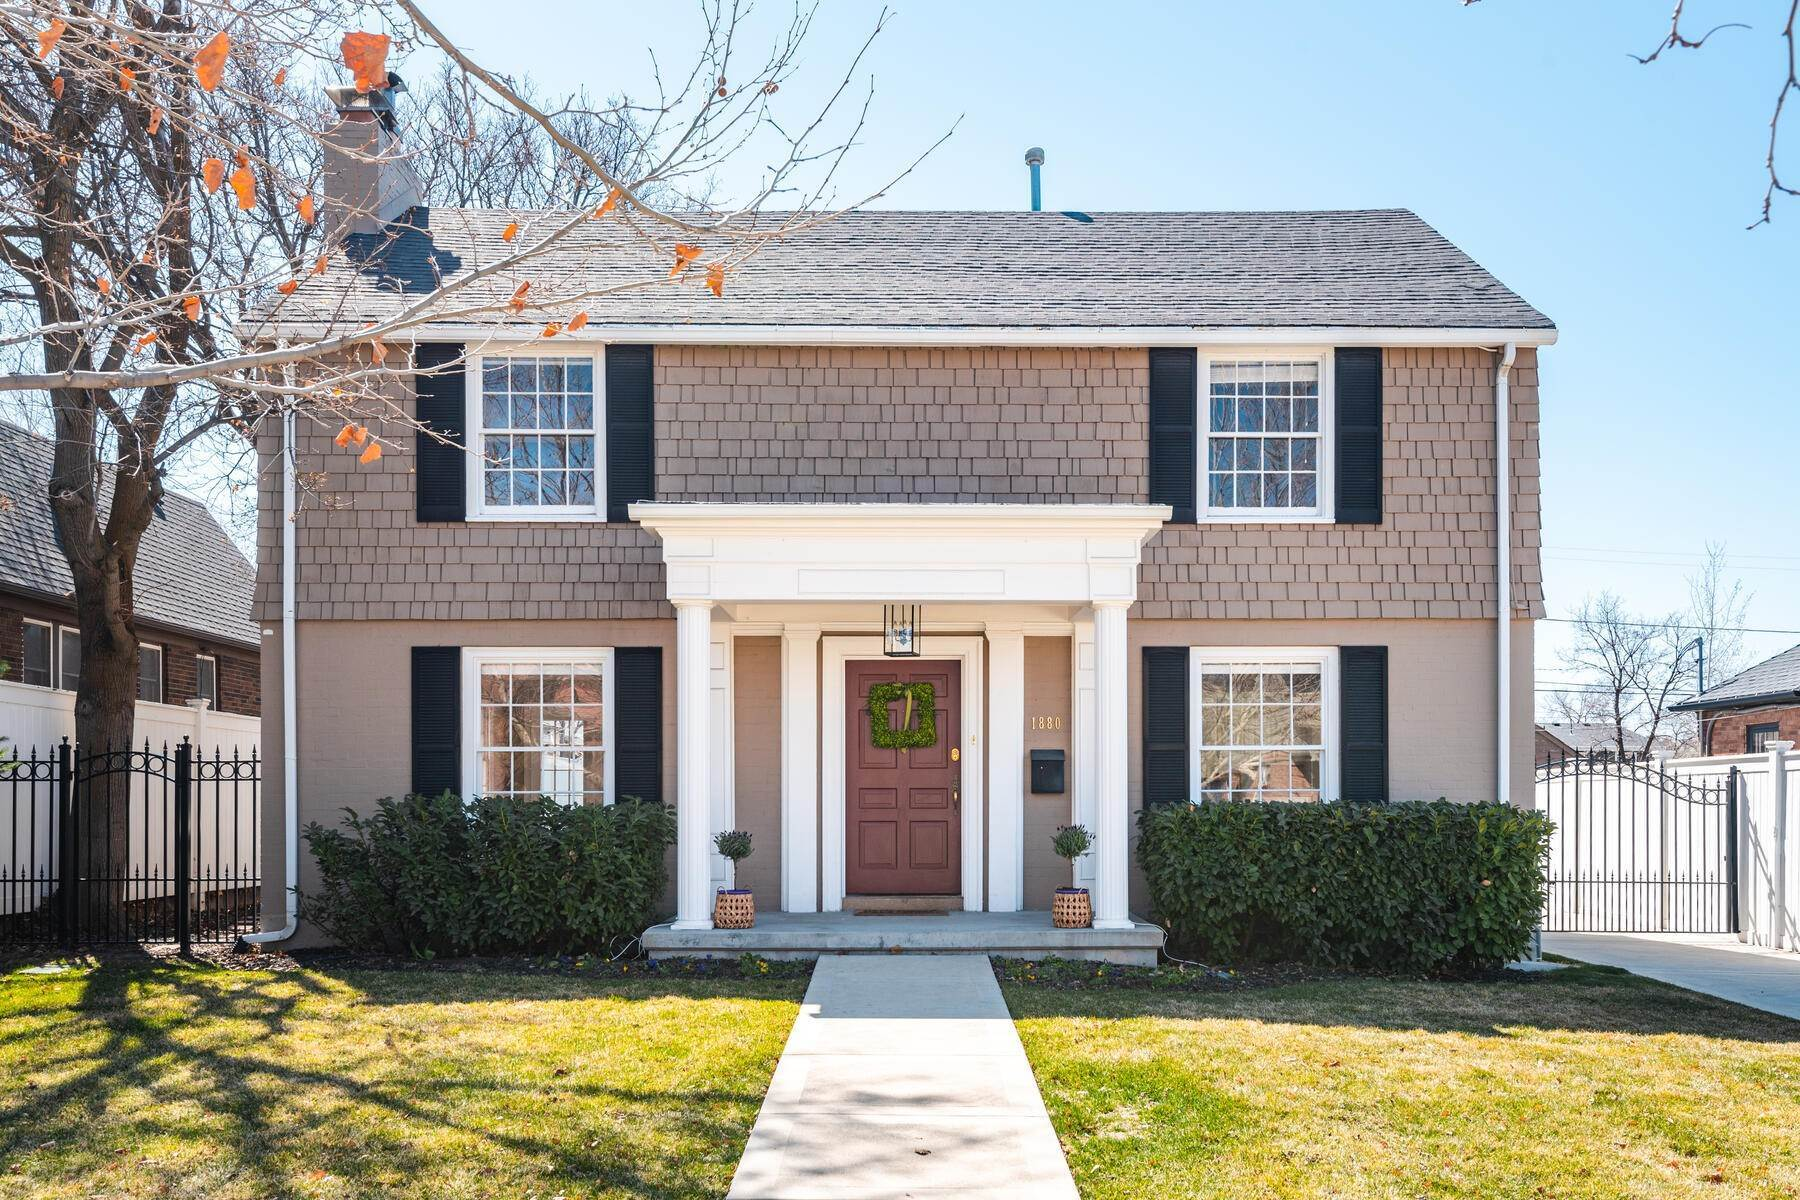 Property for Sale at Classic Colonial Cottage on Desirable Yale Avenue 1880 E Yale Ave Salt Lake City, Utah 84108 United States